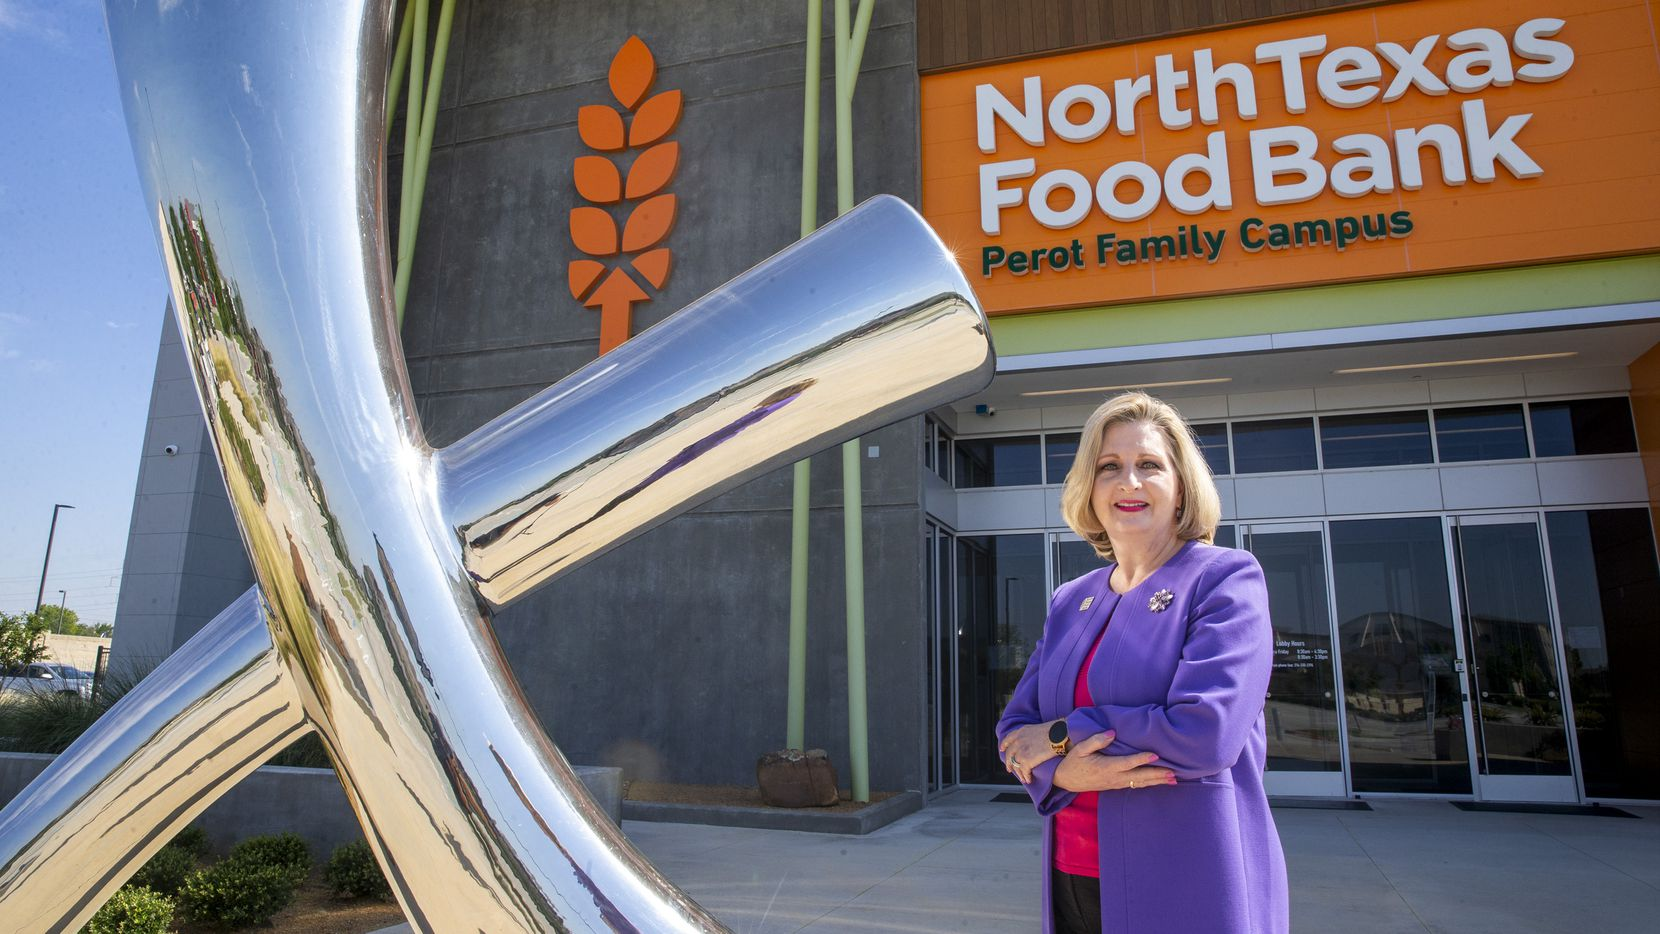 Trisha Cunningham, CEO and president of the North Texas Food Bank, stands next to a sculpture at the North Texas Food Bank Perot Family Campus in Plano. The piece is called Lulu May's Mark and is a tribute to the mother of the late Ross Perot Sr. and his sister, Bette Perot.